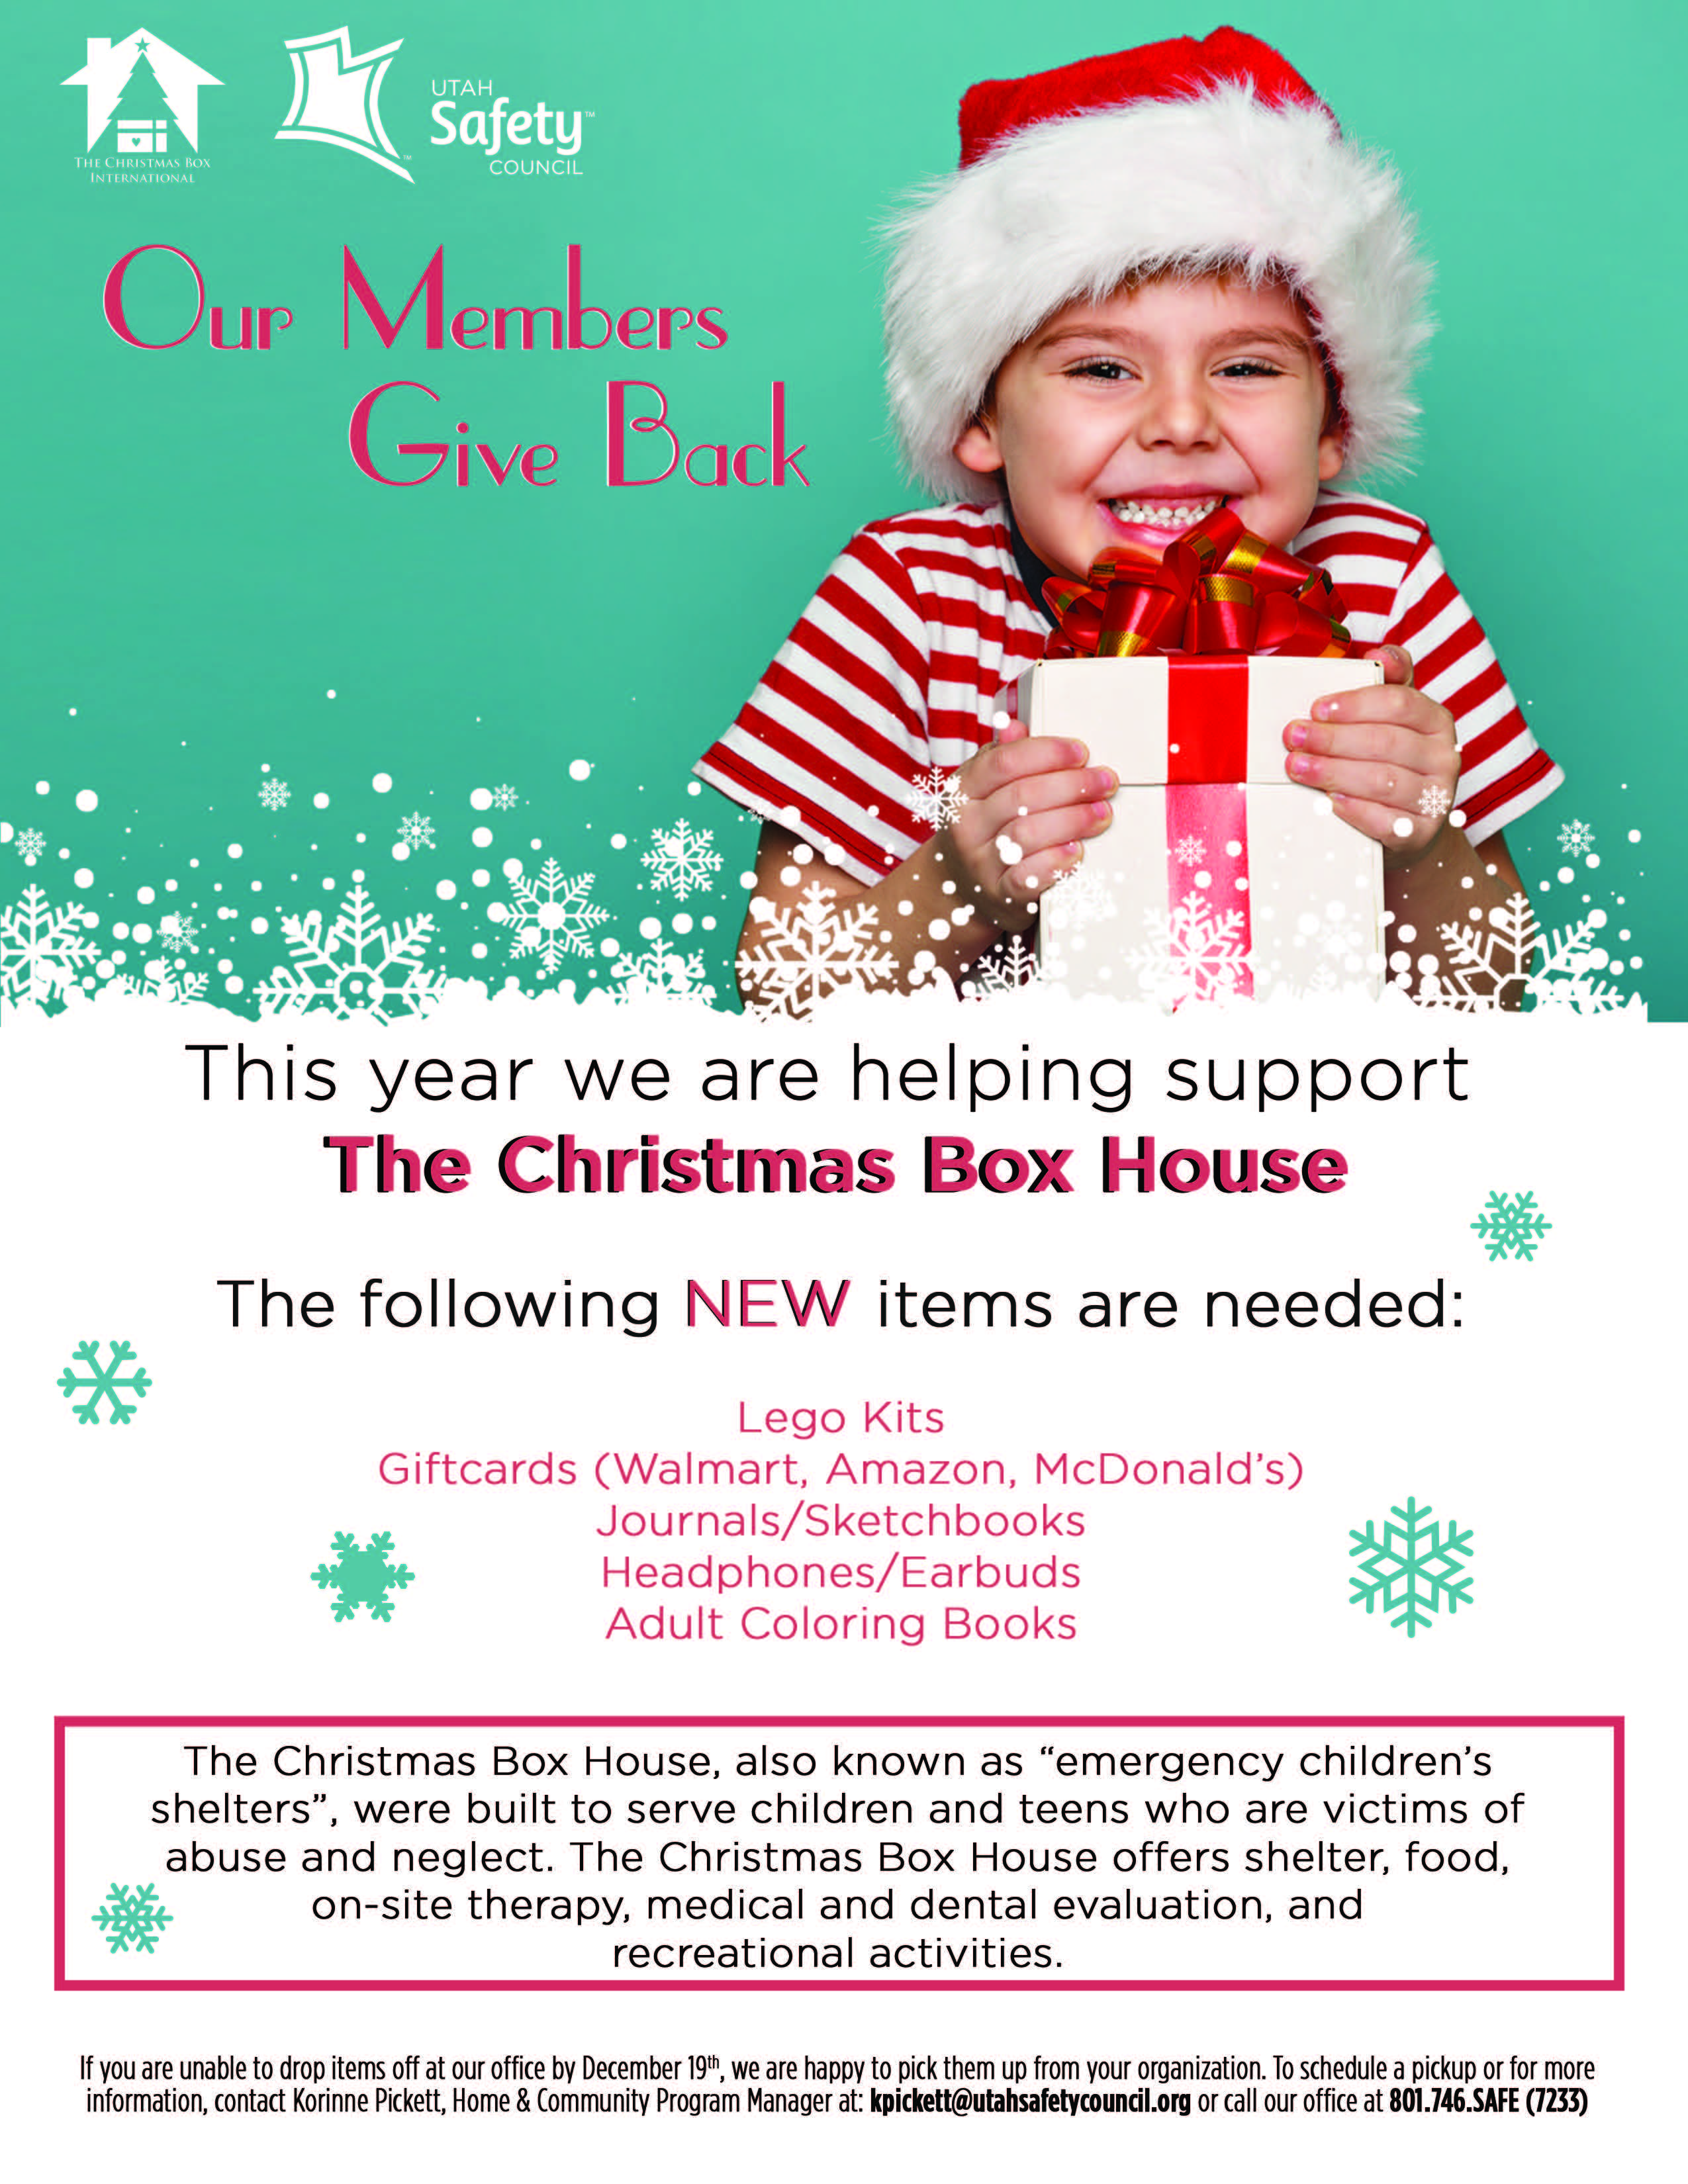 Christmas Activities In Utah.Donate To The Christmas Box House Utah Safety Council